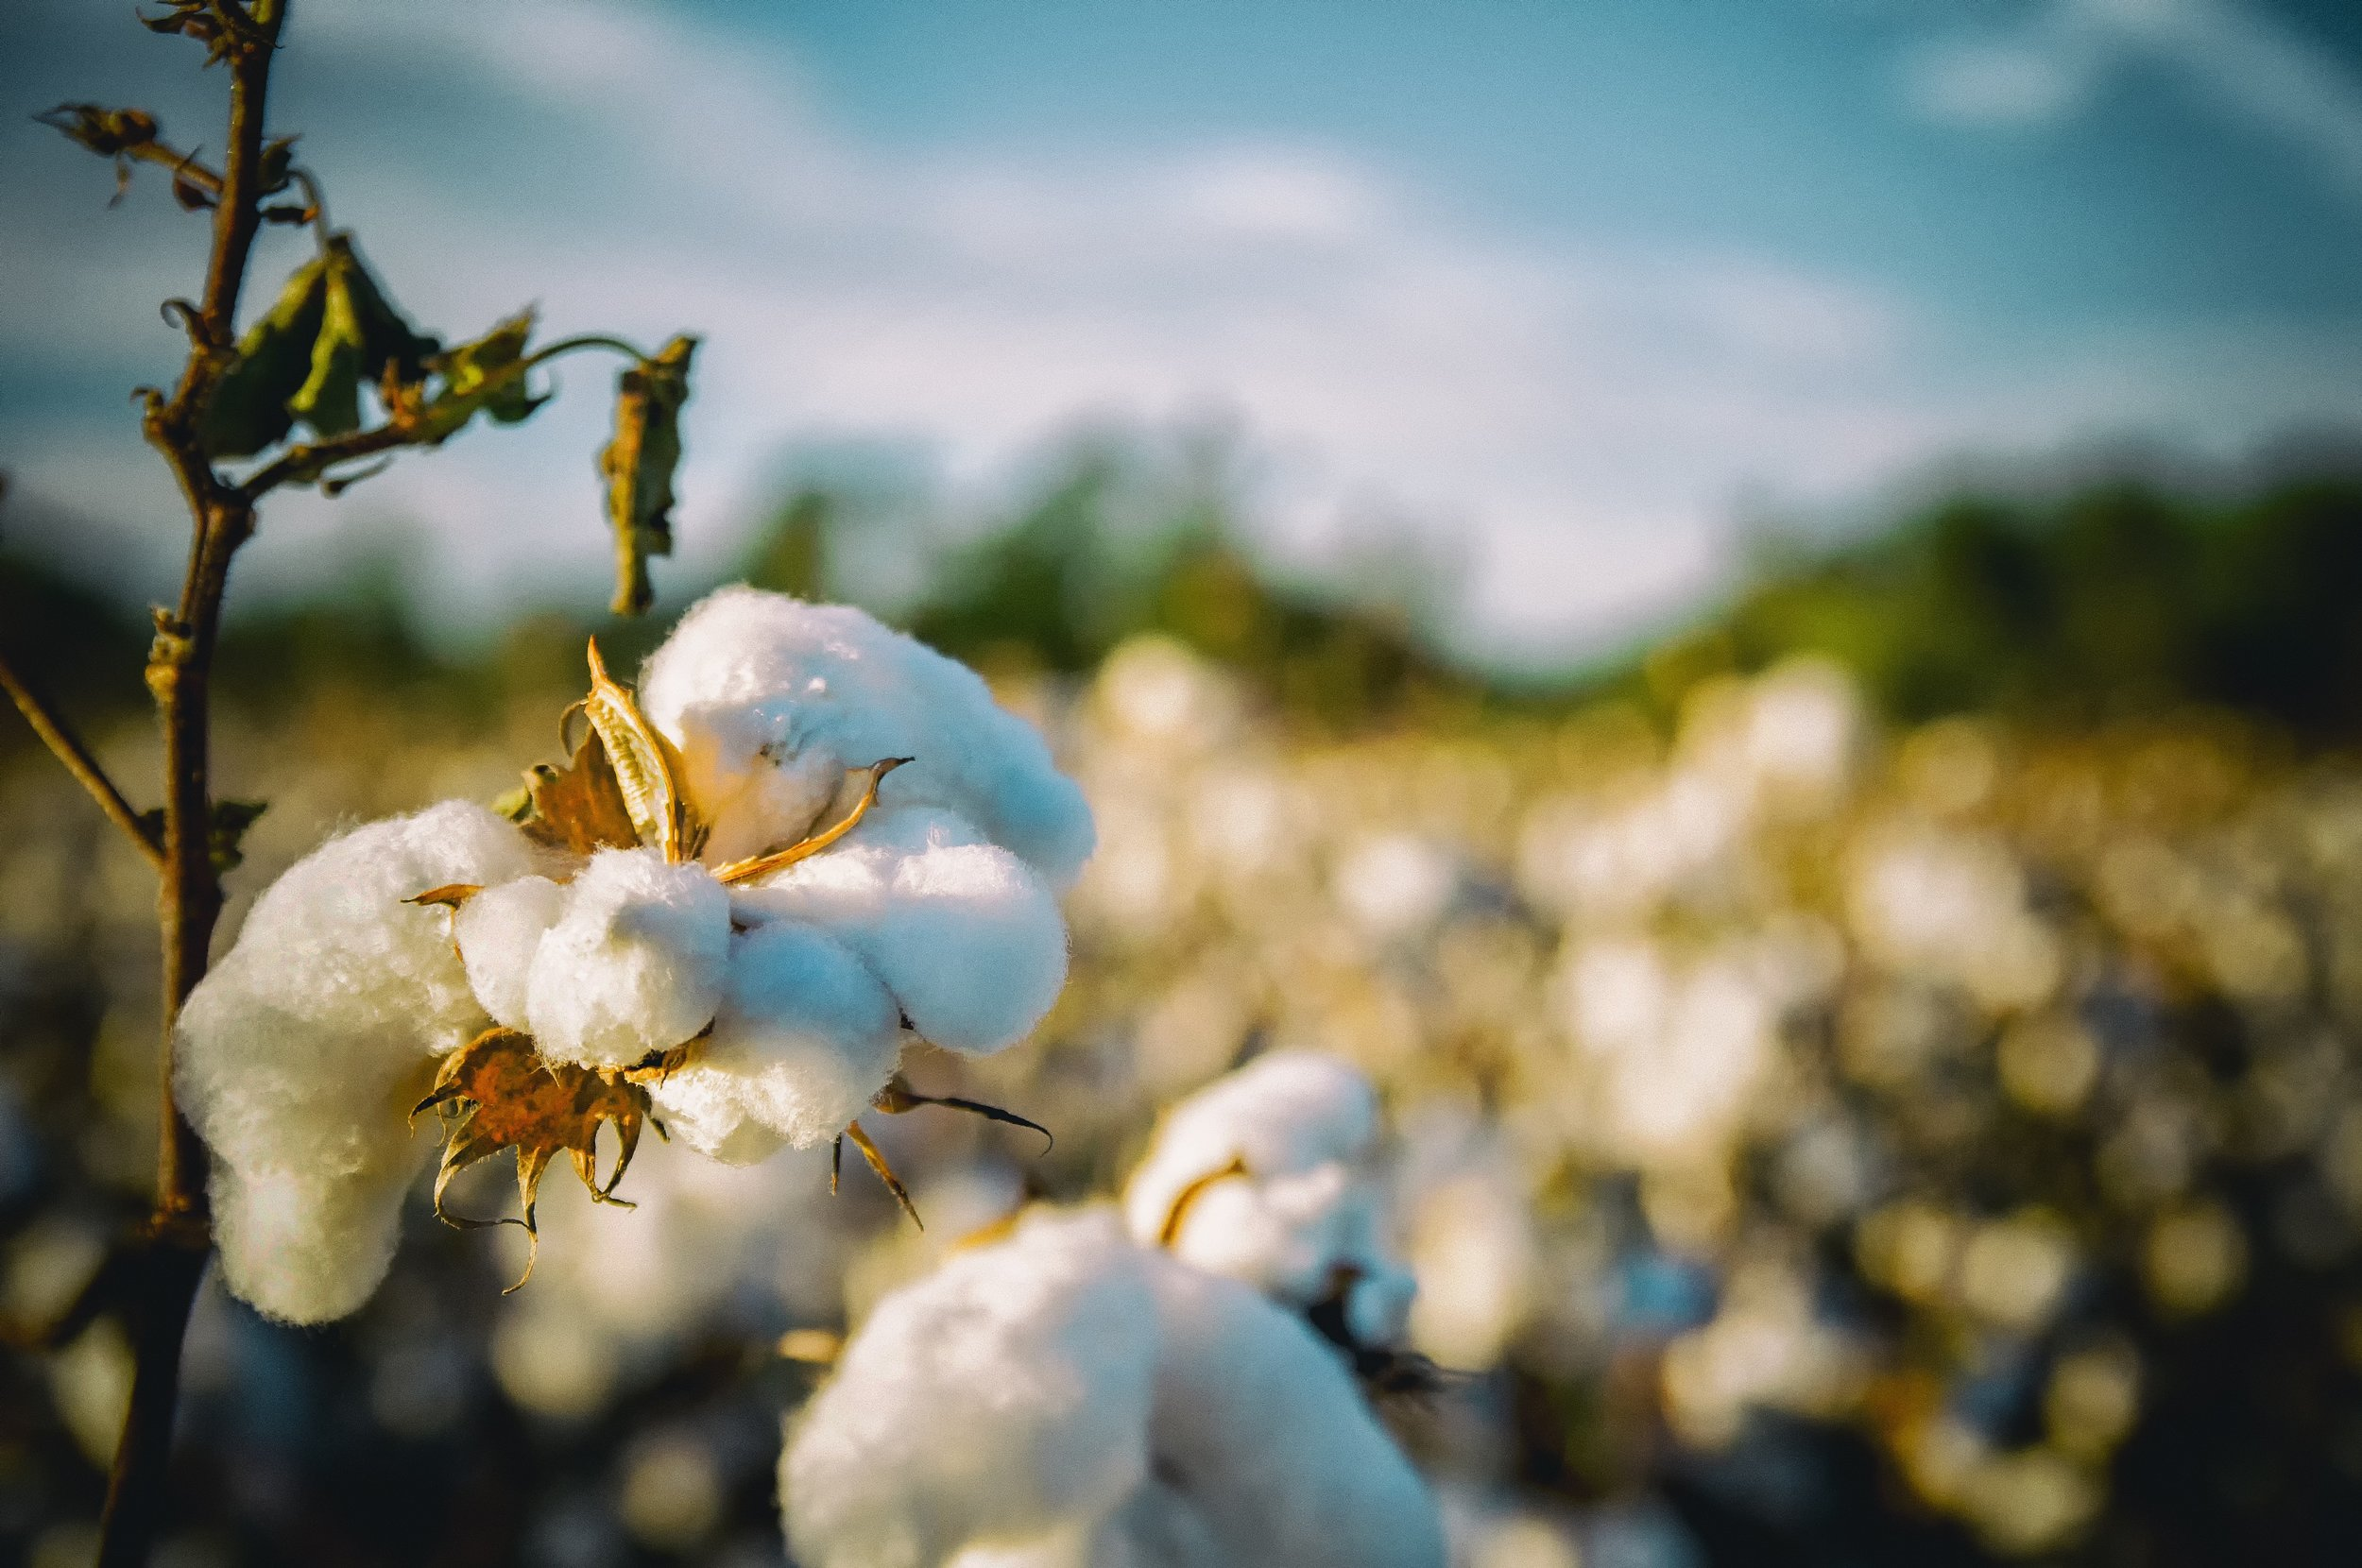 Cotton requires vast amounts of water and fertilisers to grow. Photo: Pixabay